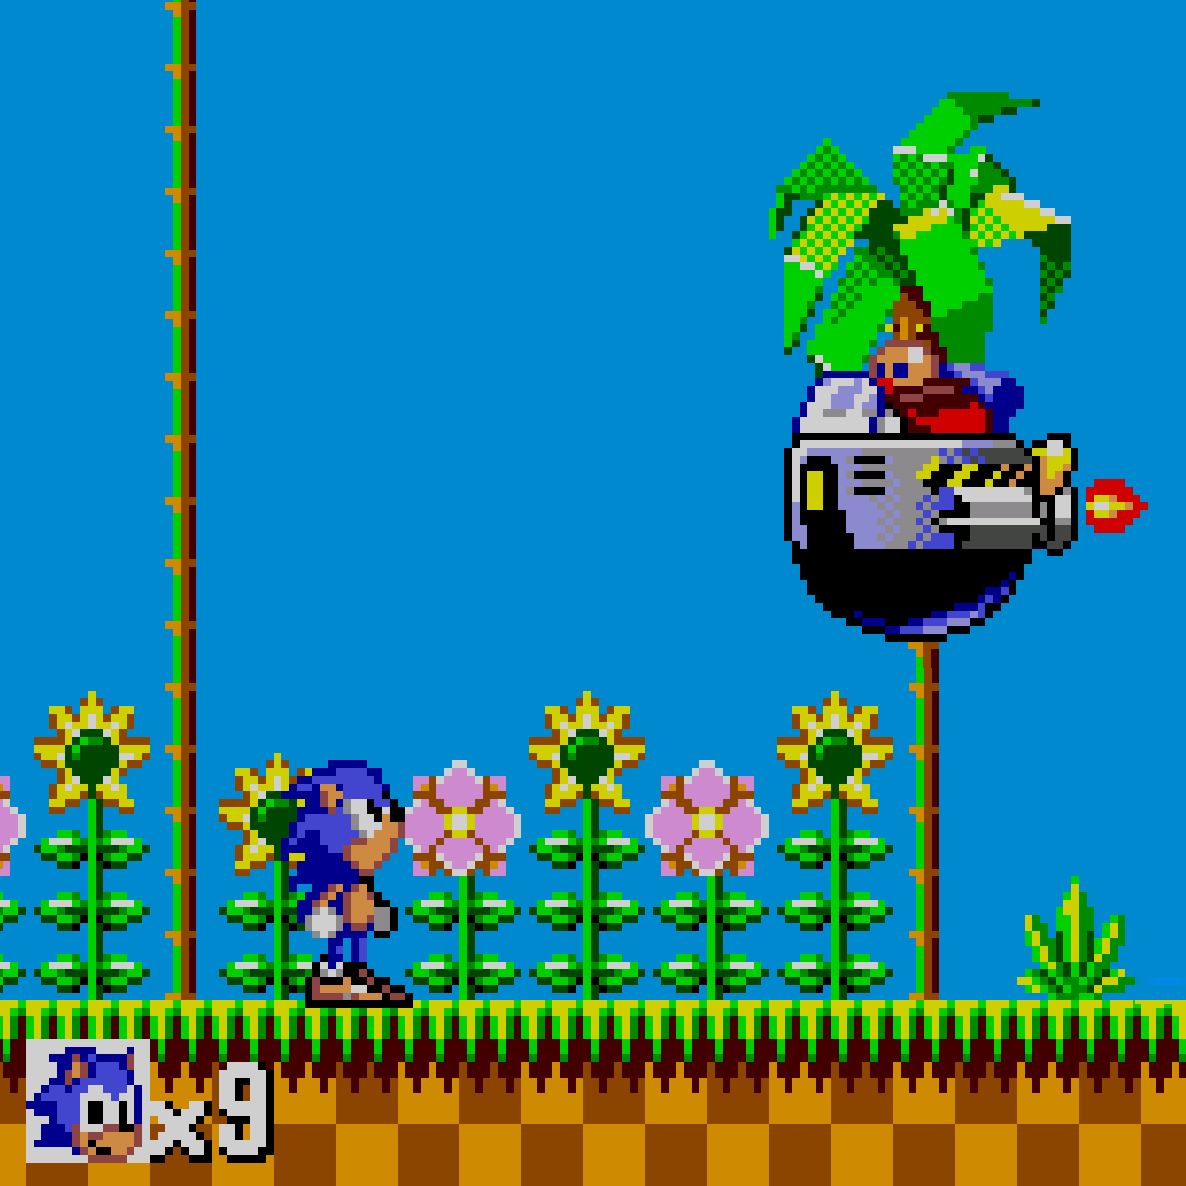 Sonic The Hedgehog Master System Featured image Classic Sega Master System Games - Which Was Your Favourite?